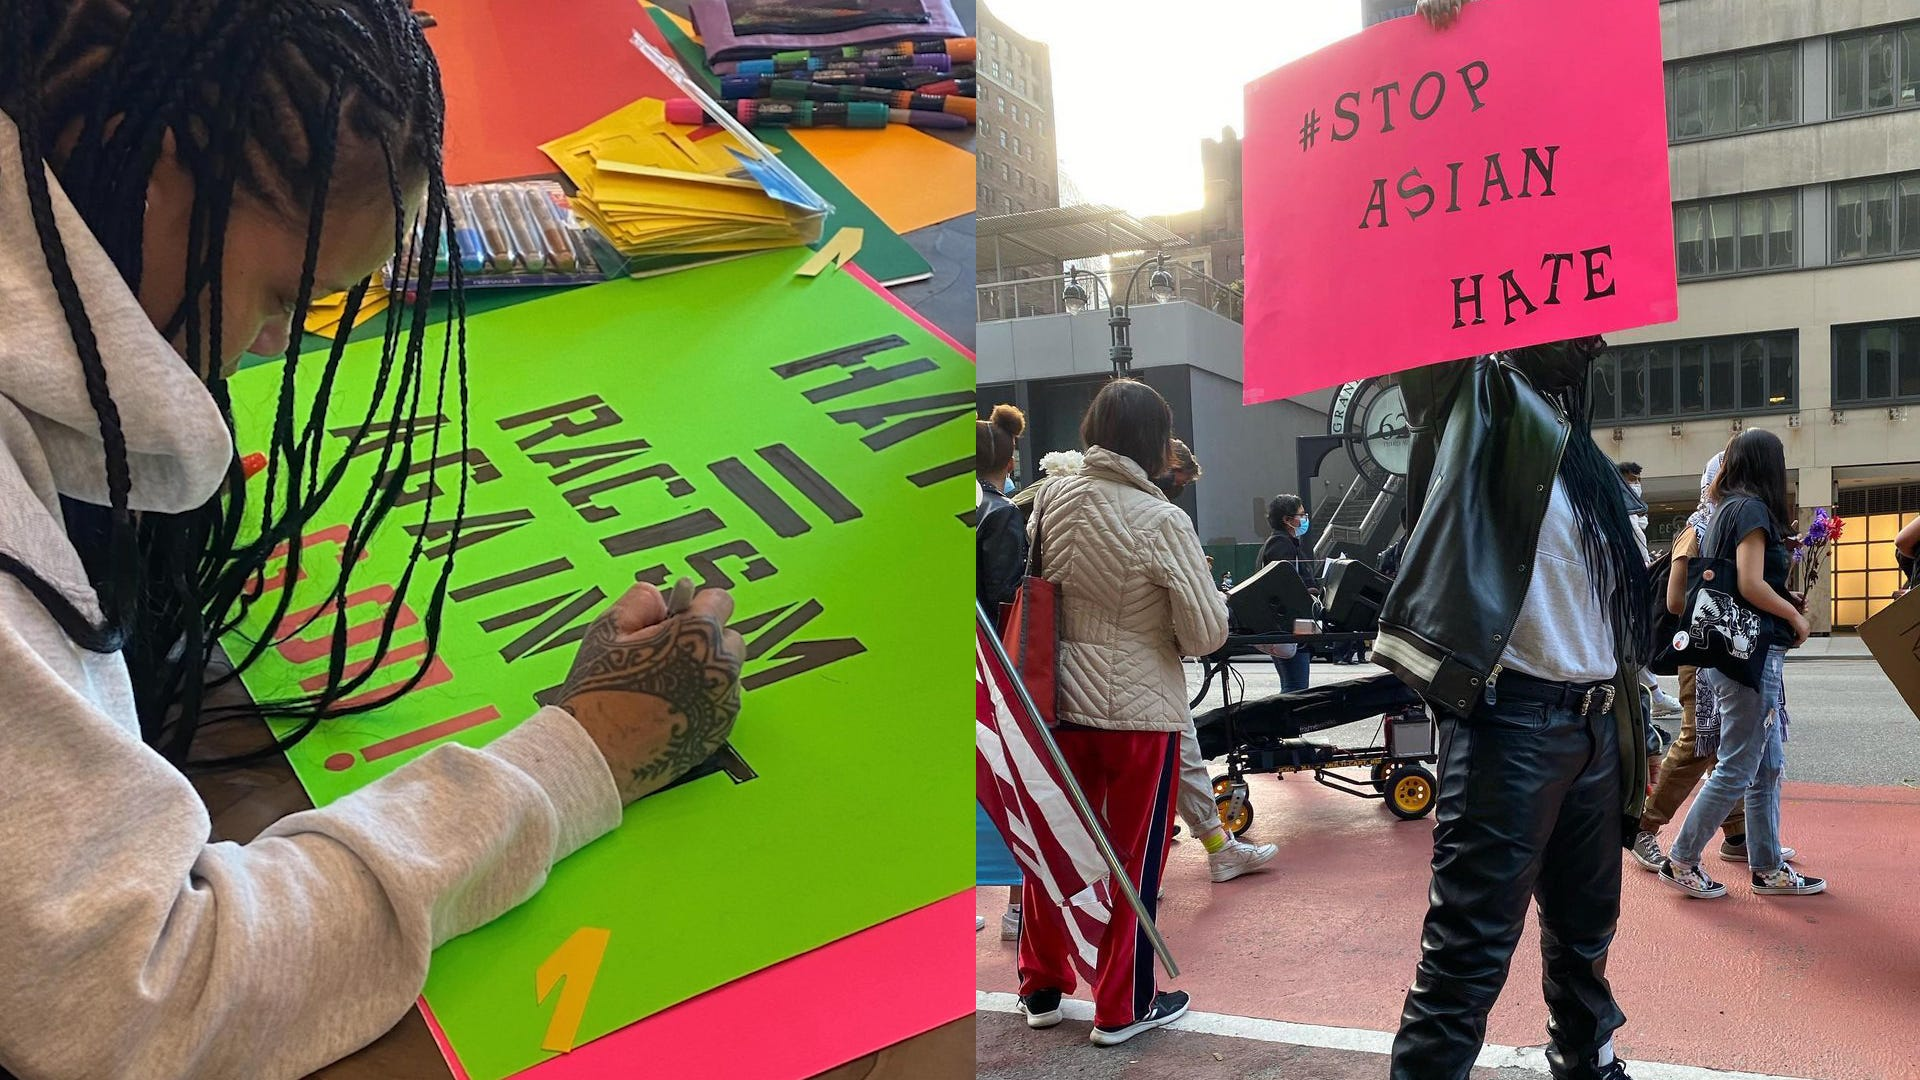 Rihanna attends anti-Asian hate protest in NY; assistant says she  felt compelled to take action